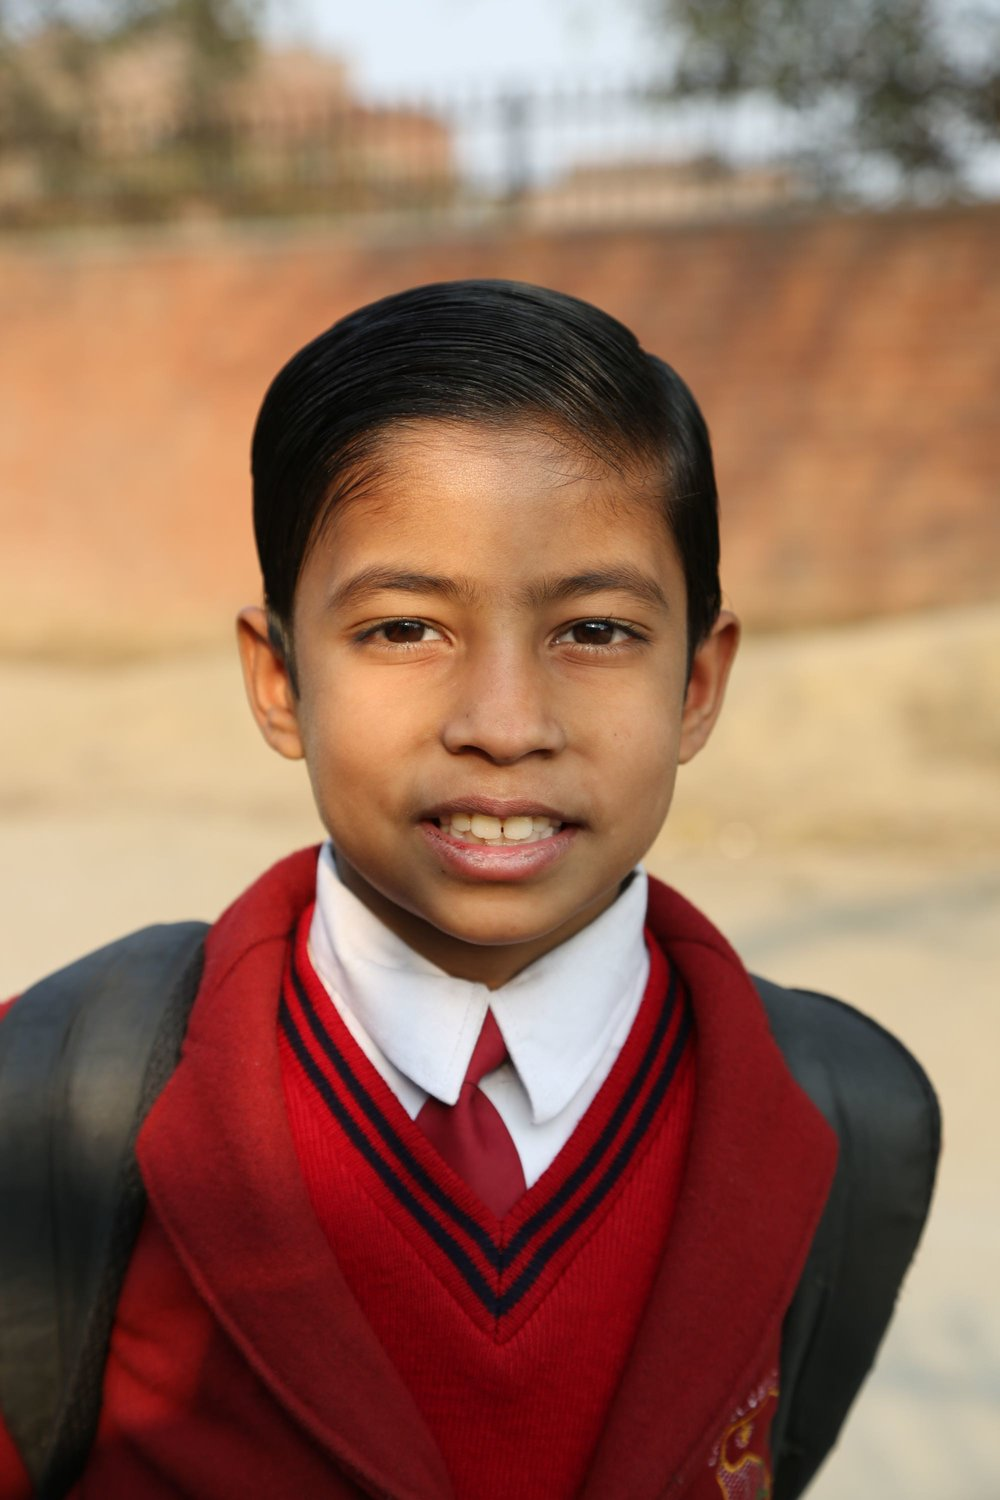 Sonu - (S2S-018)Currently in need of sponsorship. Click here to sponsor Sonu or another scholar for just $30/month!Sponsored previously by the Vrabac family